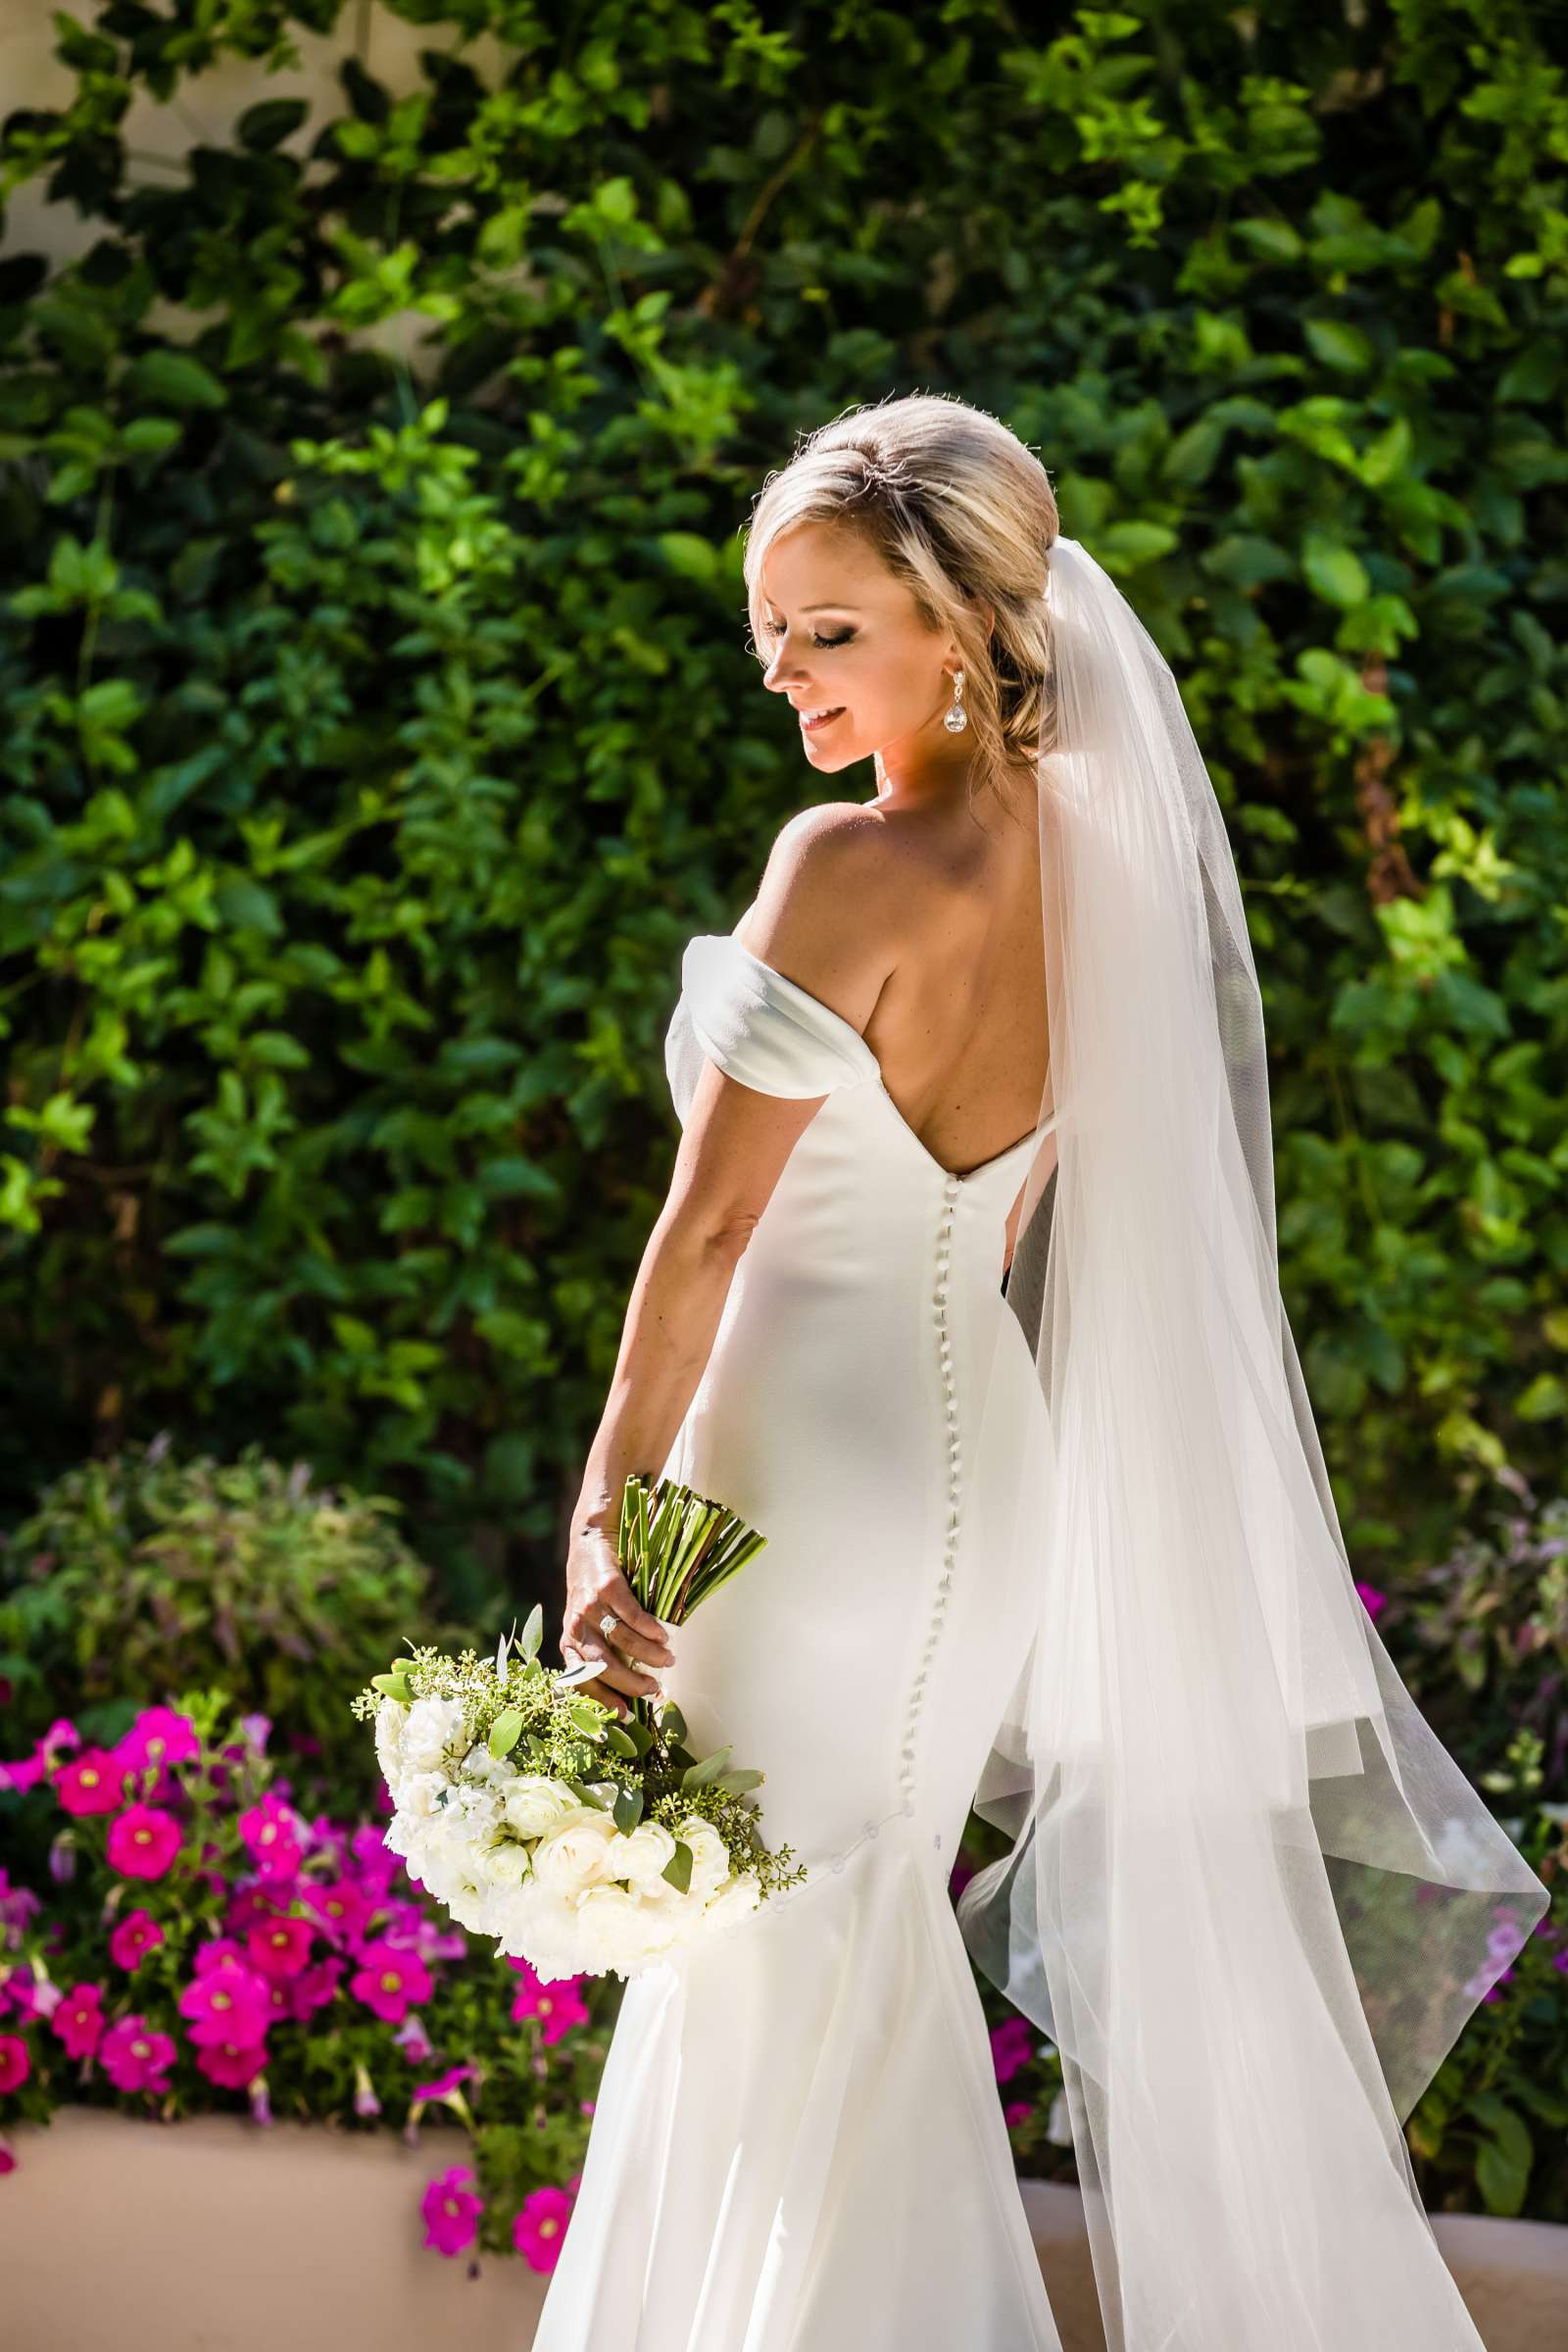 Bride at Fairbanks Ranch Country Club Wedding coordinated by Blissful Weddings & Co., Kristina and Allan Wedding Photo #481645 by True Photography